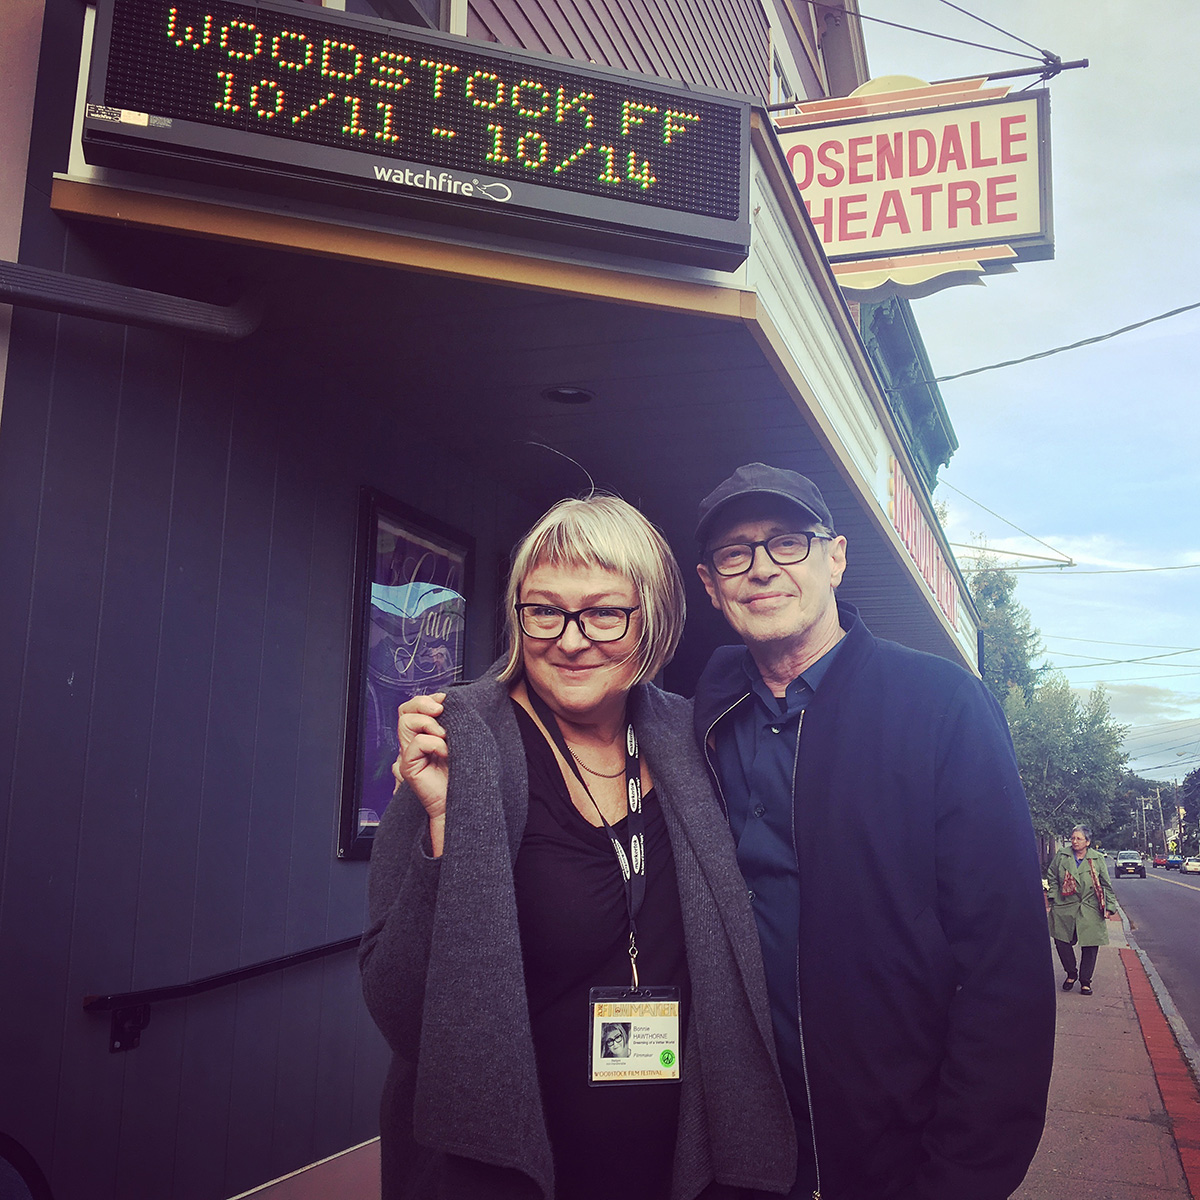 Director Bonnie Hawthorne and Executive Producer Steve Buscemi at the Rosendale Theatre.